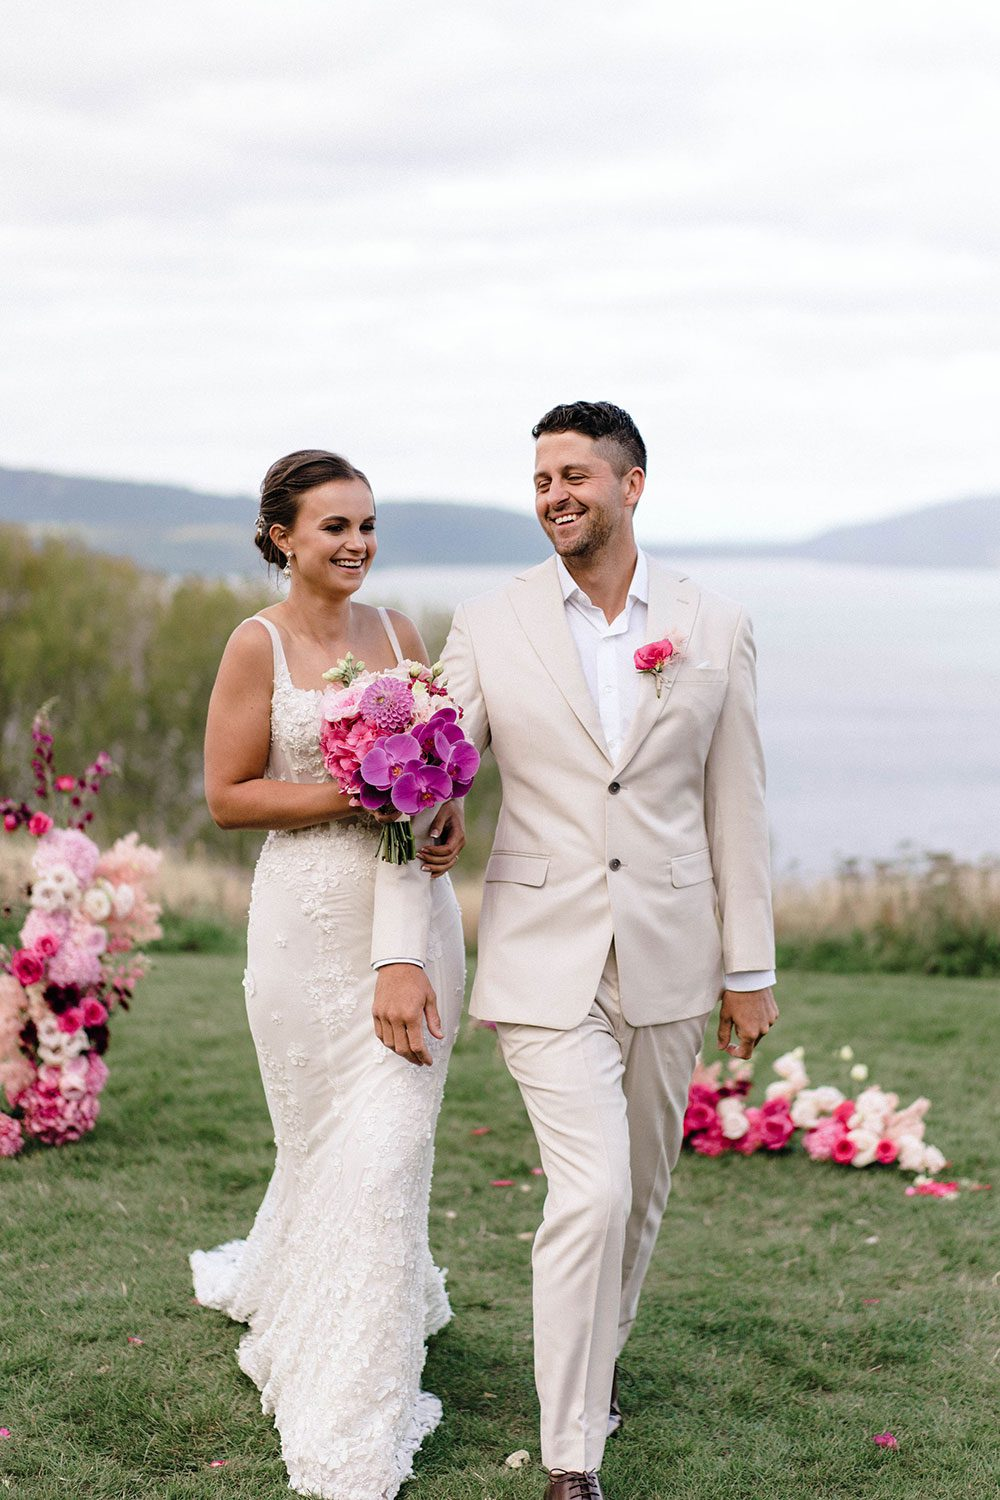 Bride wears bespoke E'More lace gown with boned bodice with hand beaded flower applique and full lace train by Auckland wedding dress maker Vinka designs - with groom holding bouquet